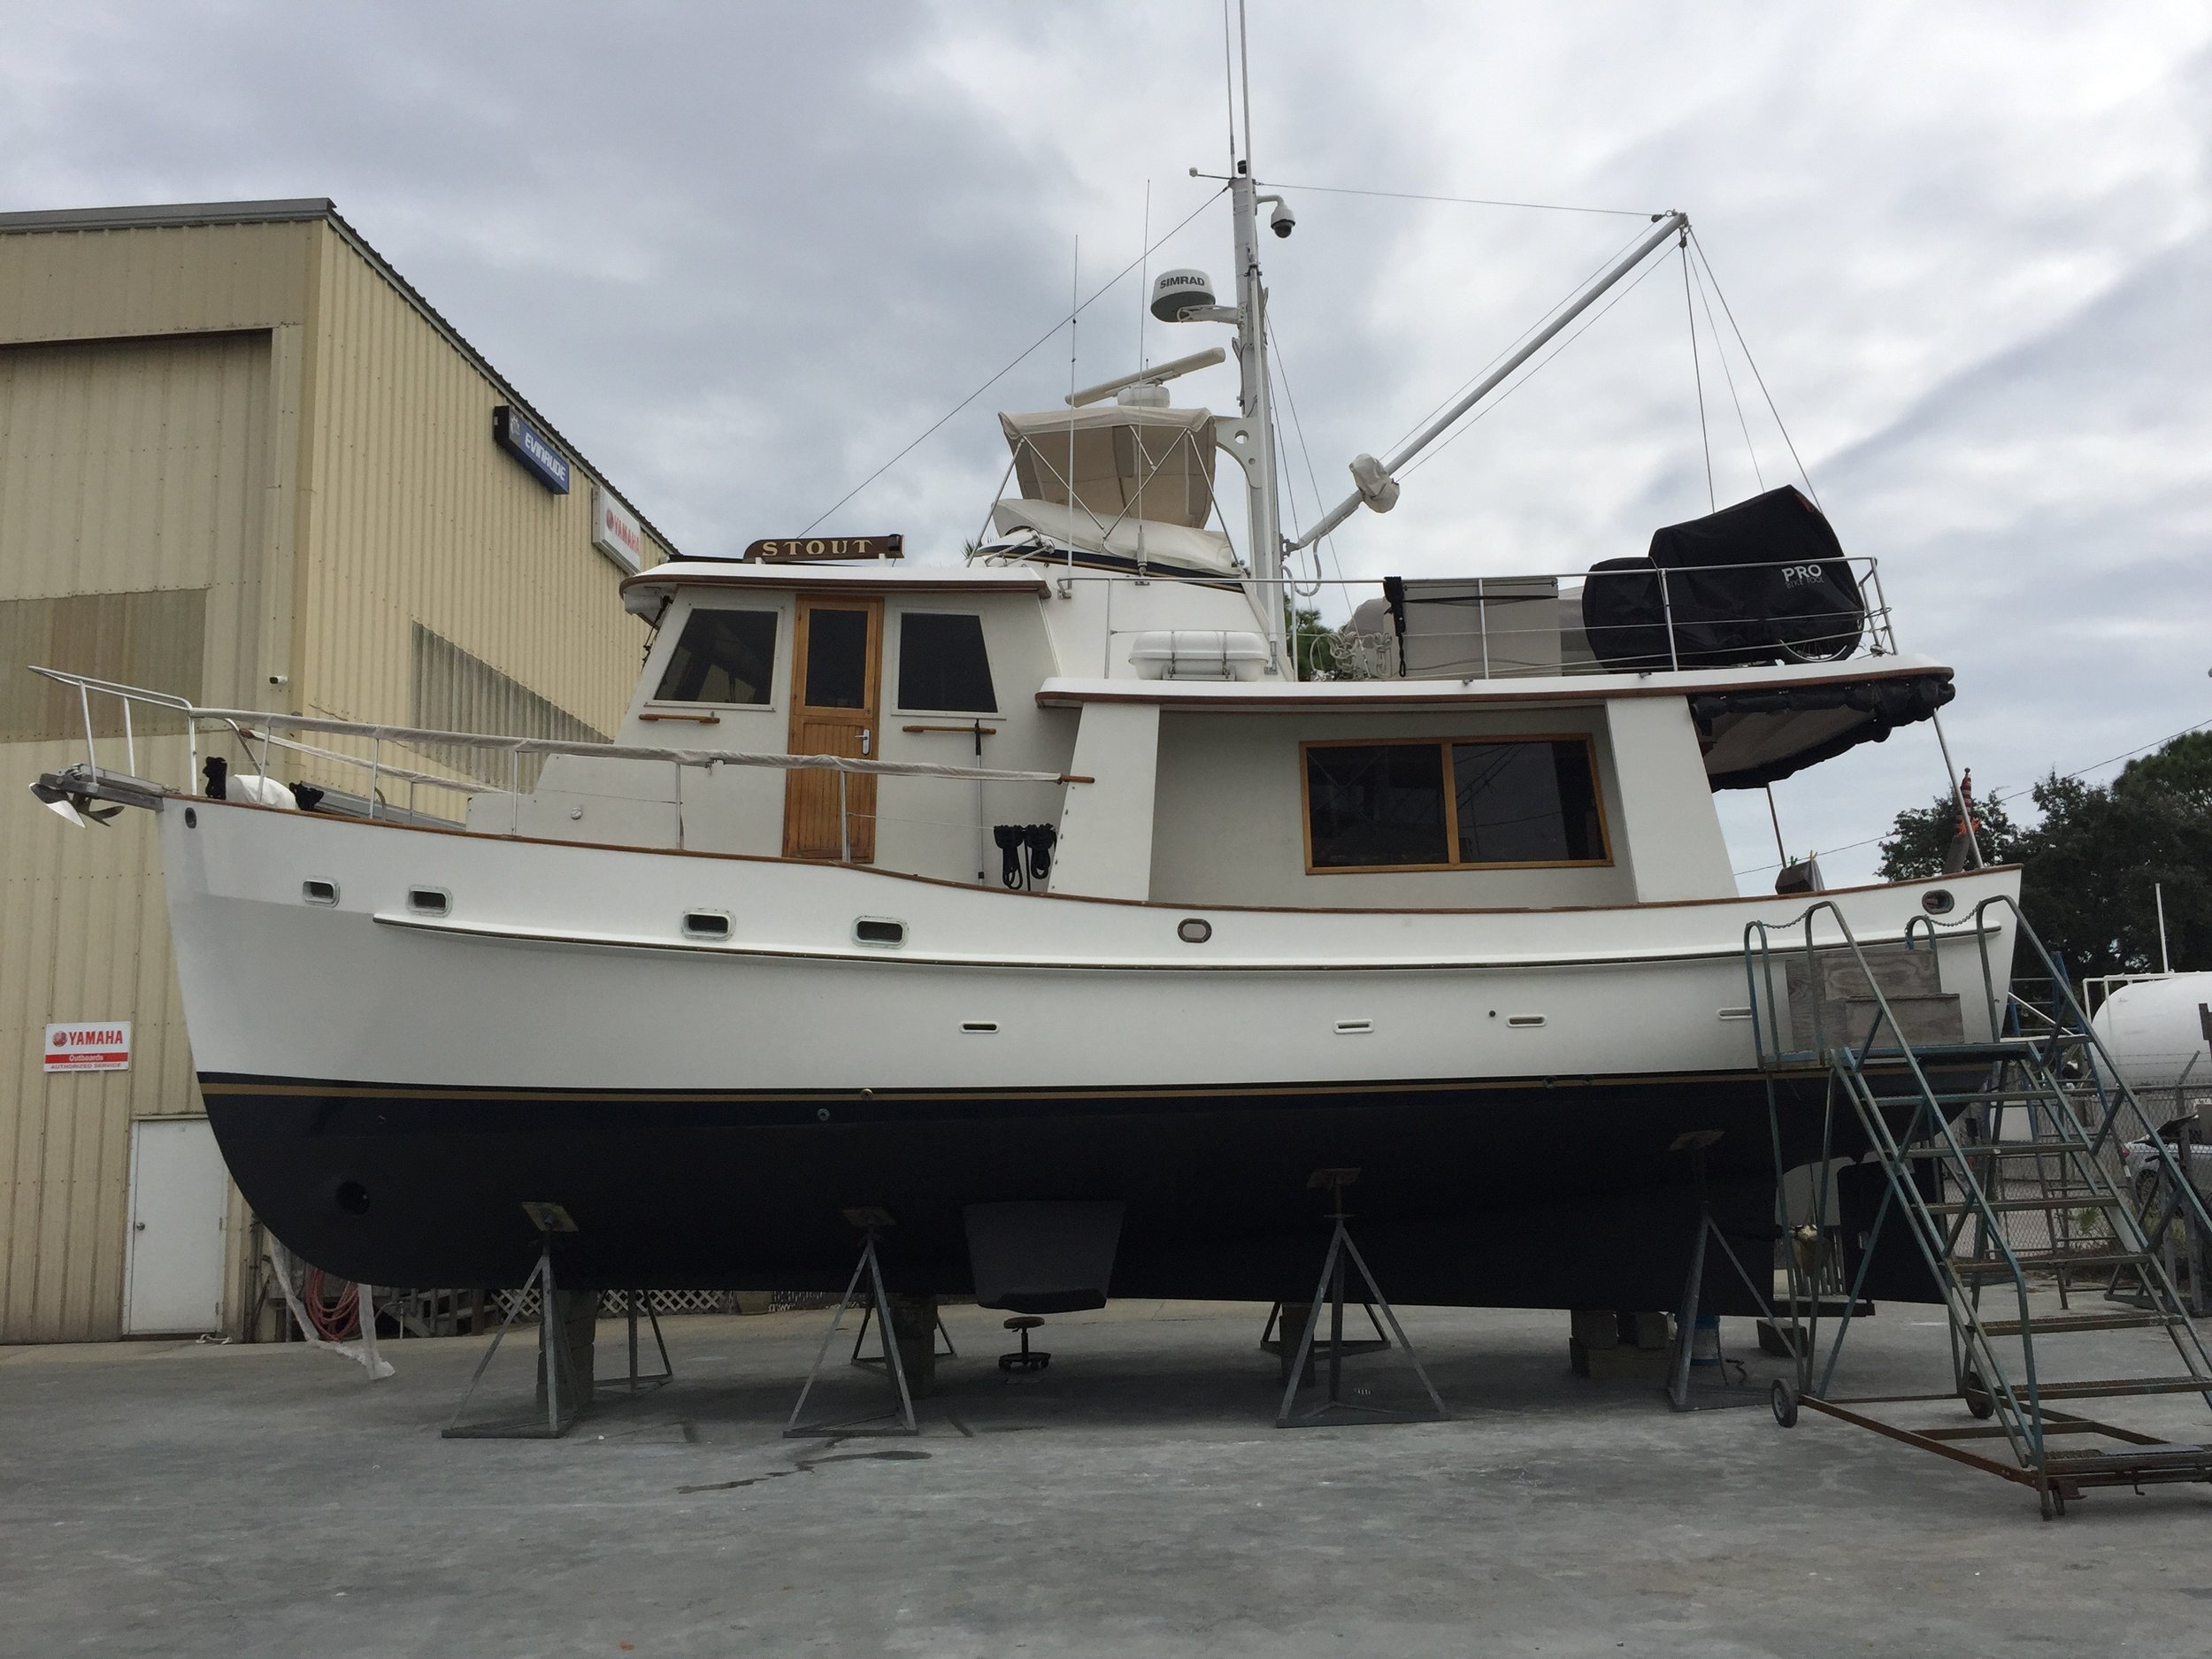 All ready for salt water - new bottom paint, new anodes (magnesium for fresh water/zinc for salt water), new gasket for the pilot house window, fiberglass dings repaired and freshly washed and waxed hull